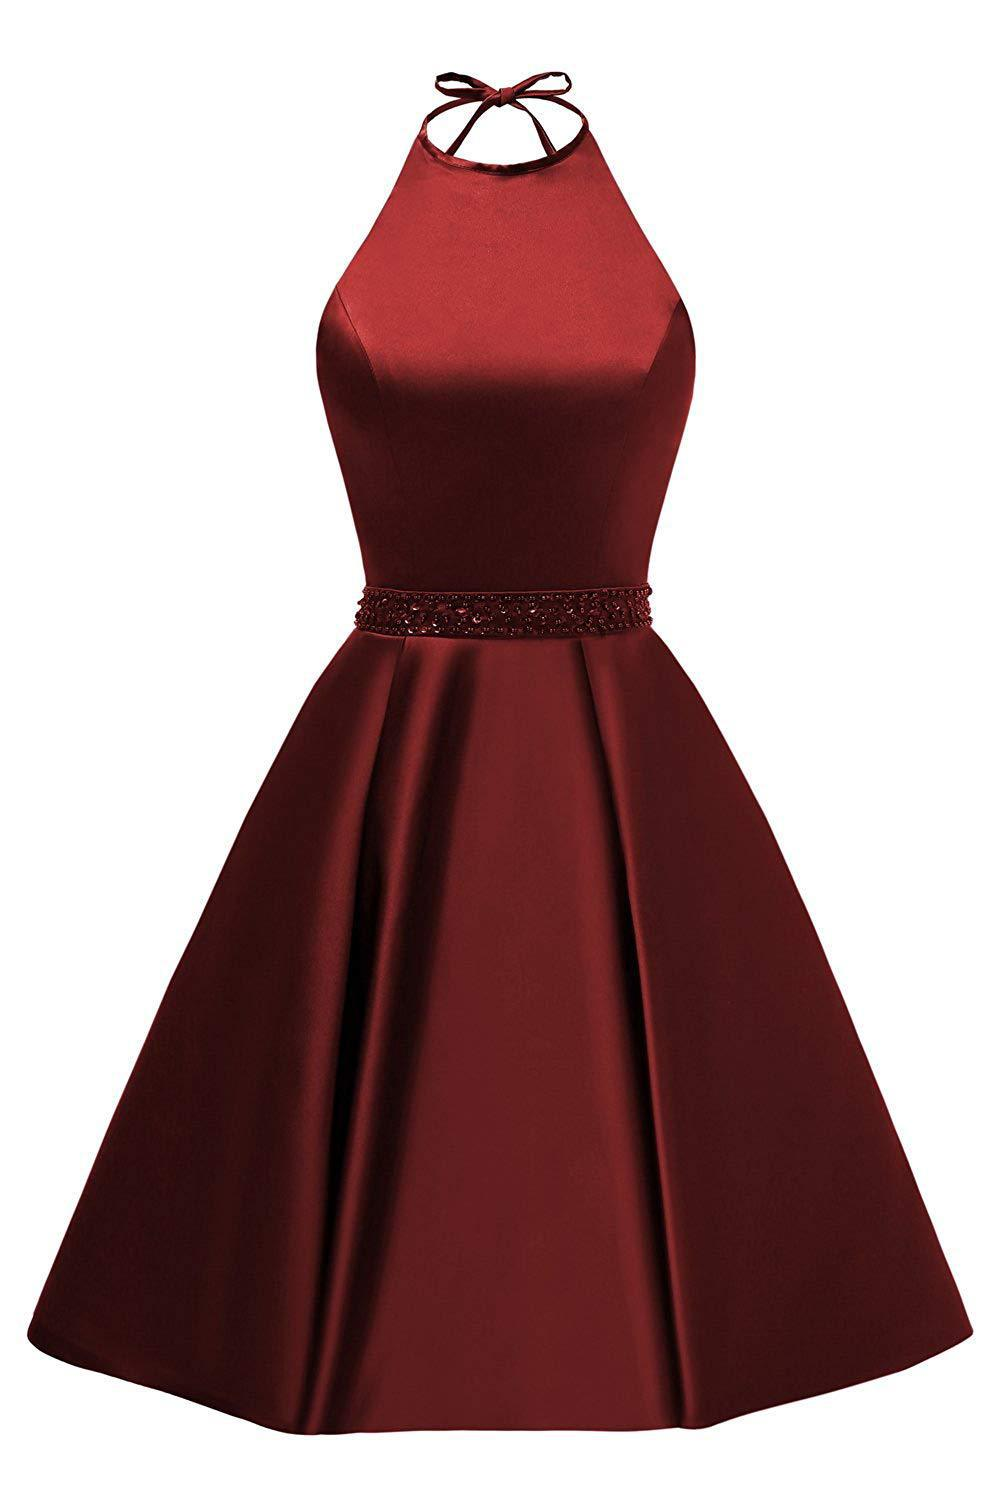 Sexy Burgundy Cocktail Dress Satin A Line Short Homecoming Dress 2019 Mini Graduation Party Dresses Cheap Robe De Cocktail